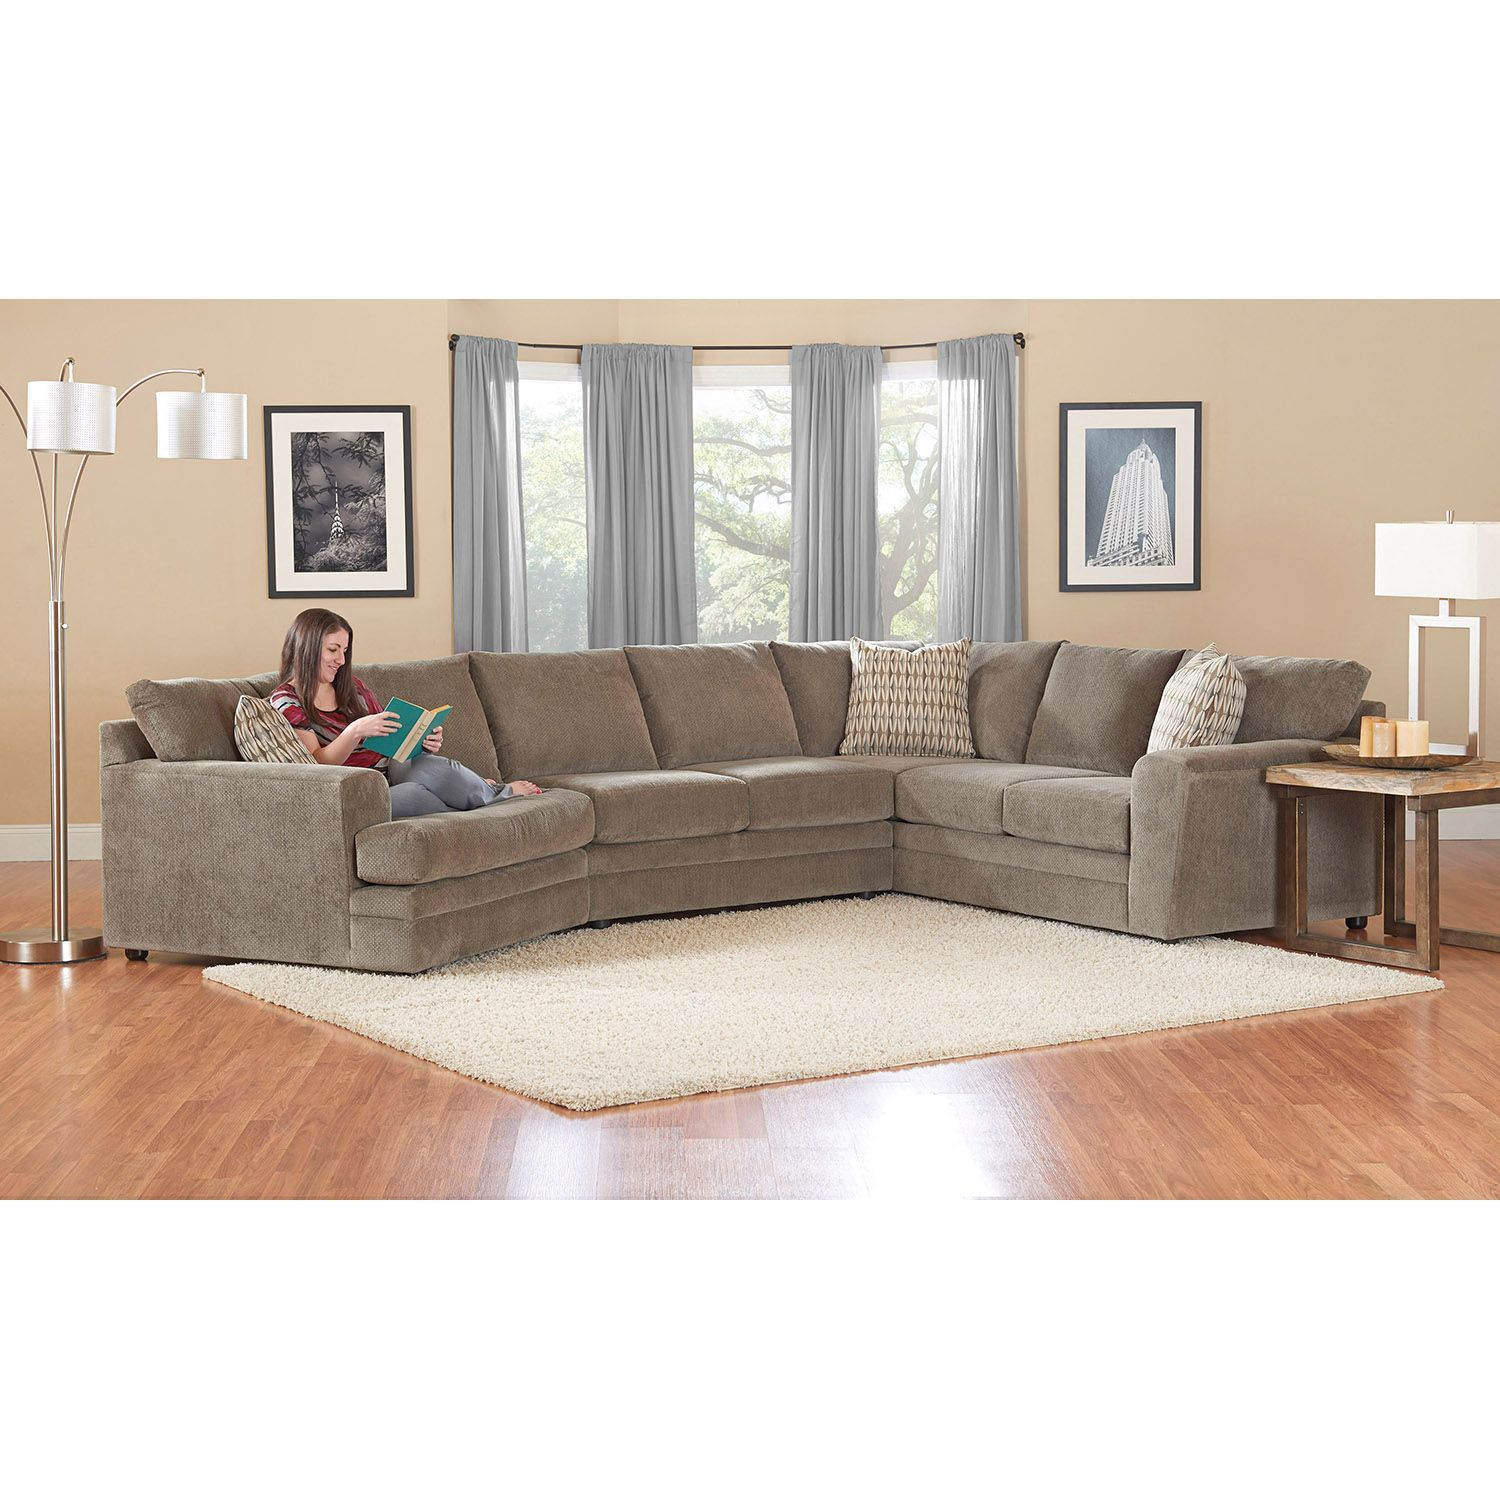 Prestige Ashburn Sectional Sofa Sam S Club Gray Couch